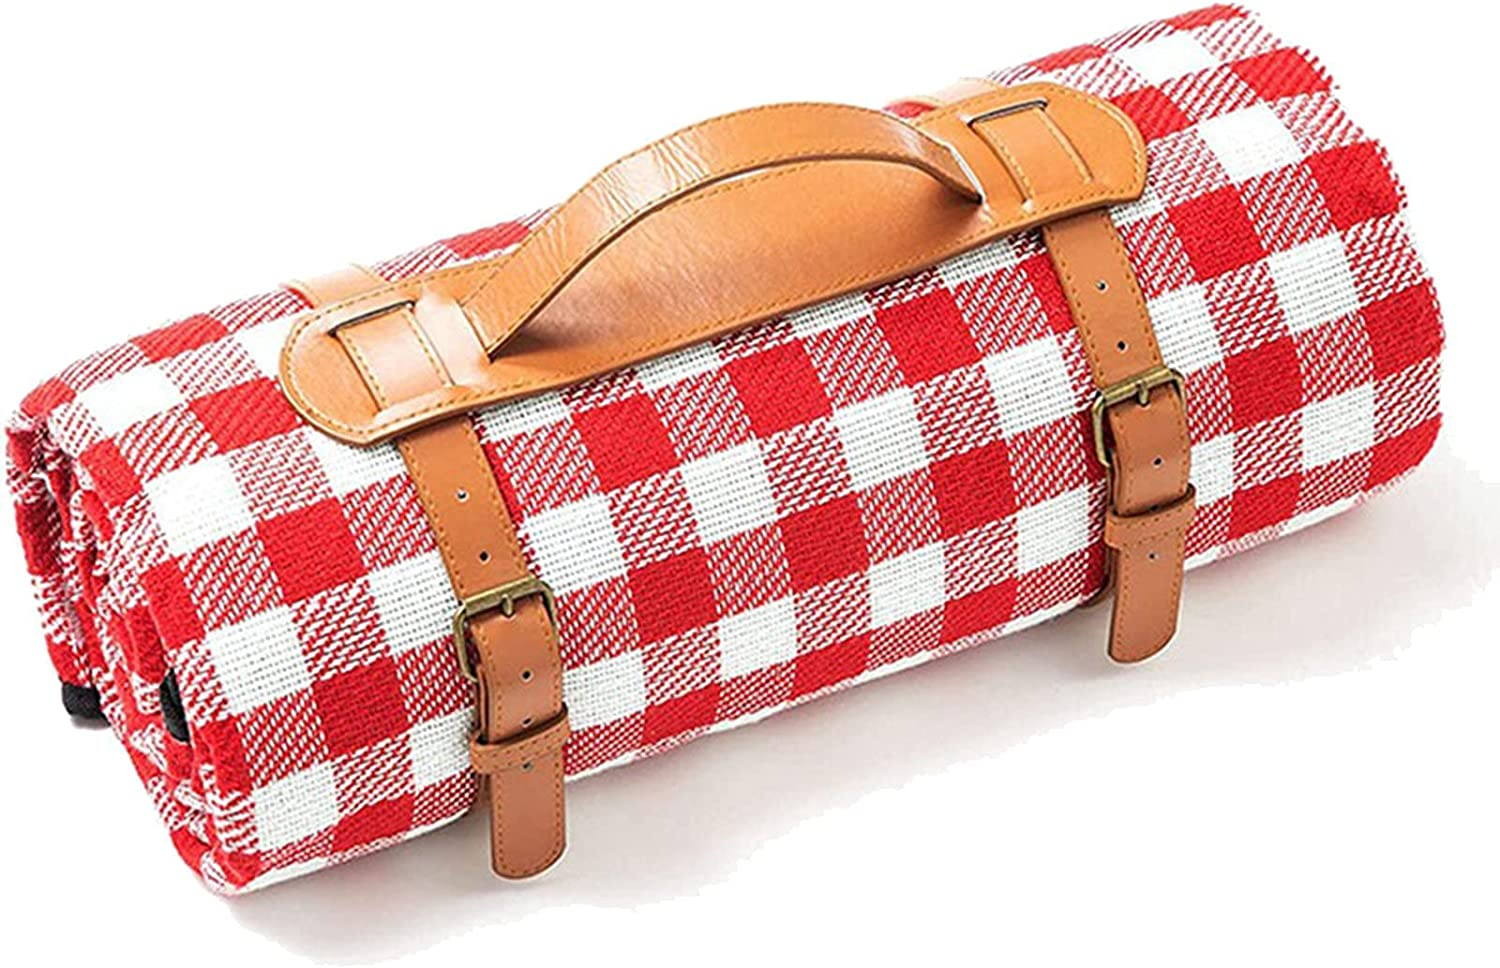 DZGN Large Picnic Blanket Fort Worth Sale special price Mall Outdoor Mat Waterproof Backing